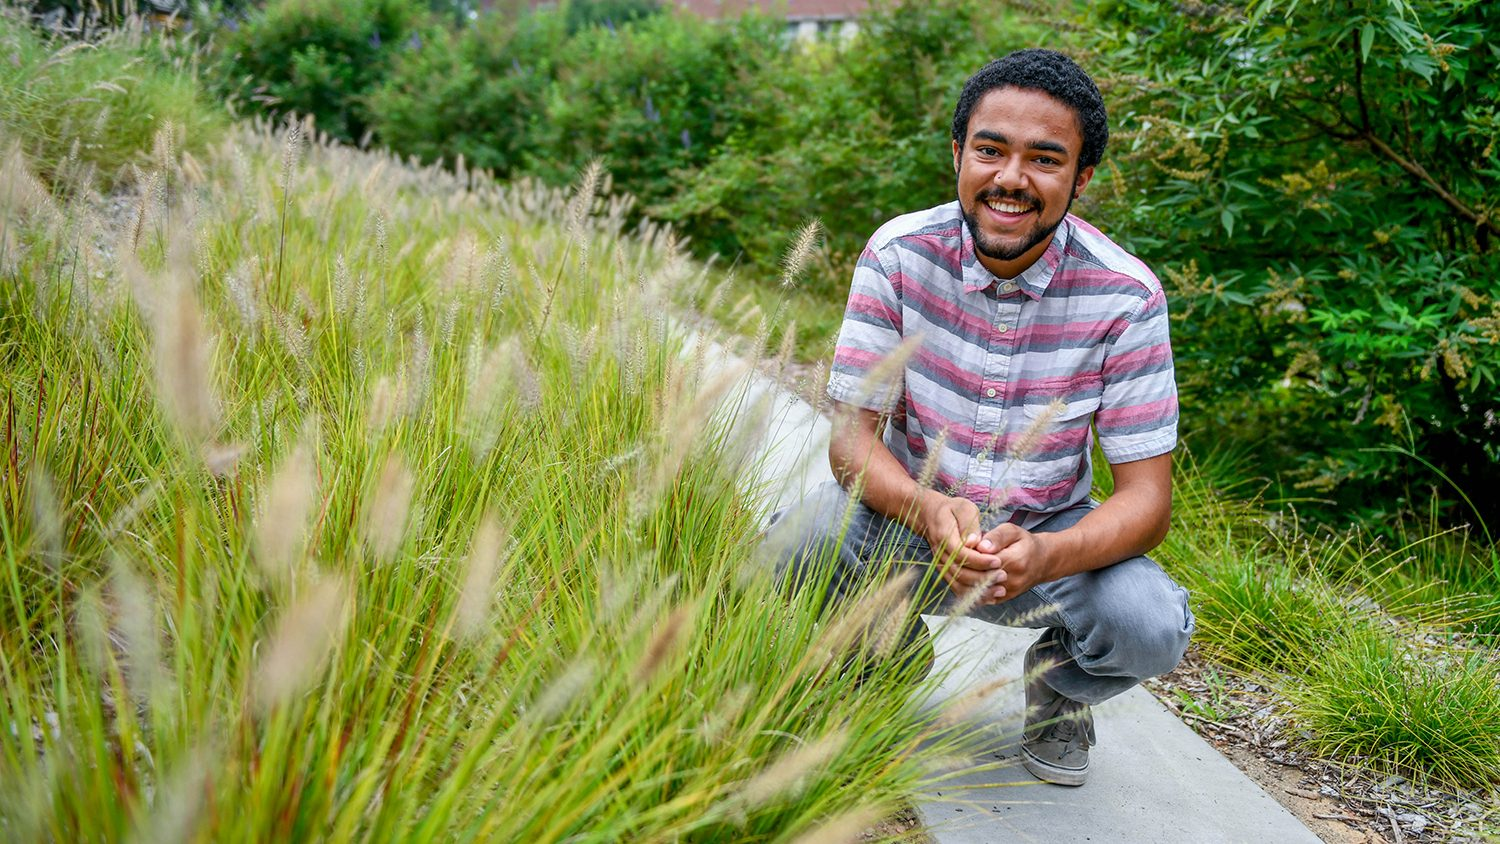 Student on a paved path, squatting down near ornamental grass.